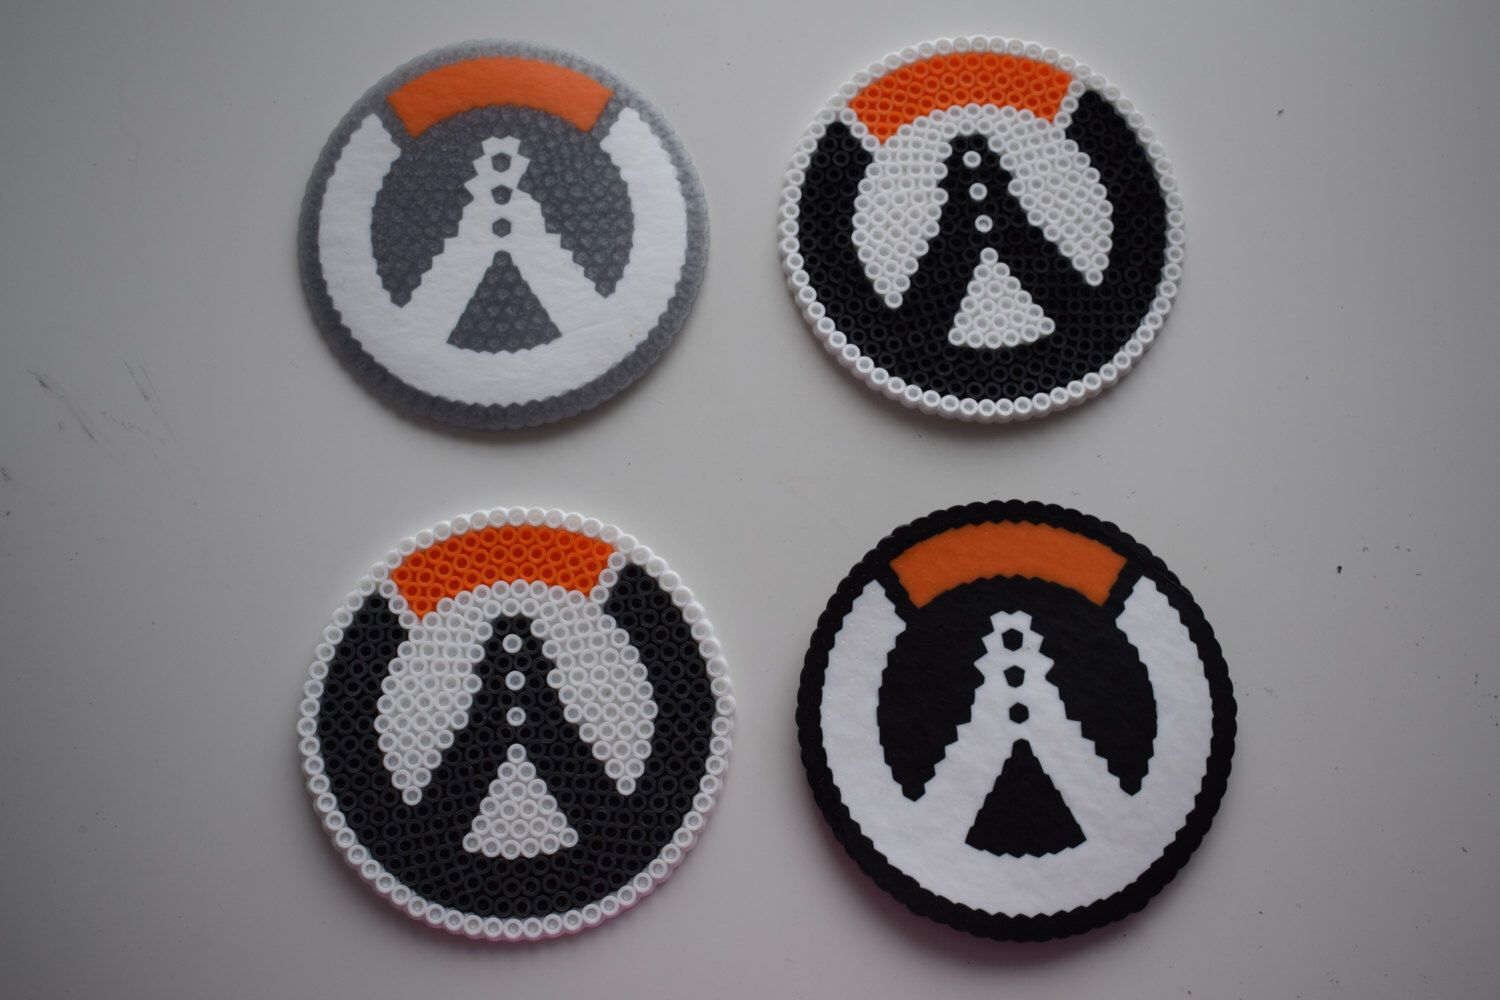 OVERWATCH Emblem Coasters - Perler Beads by LadyLeeCosplay on Etsy (null)